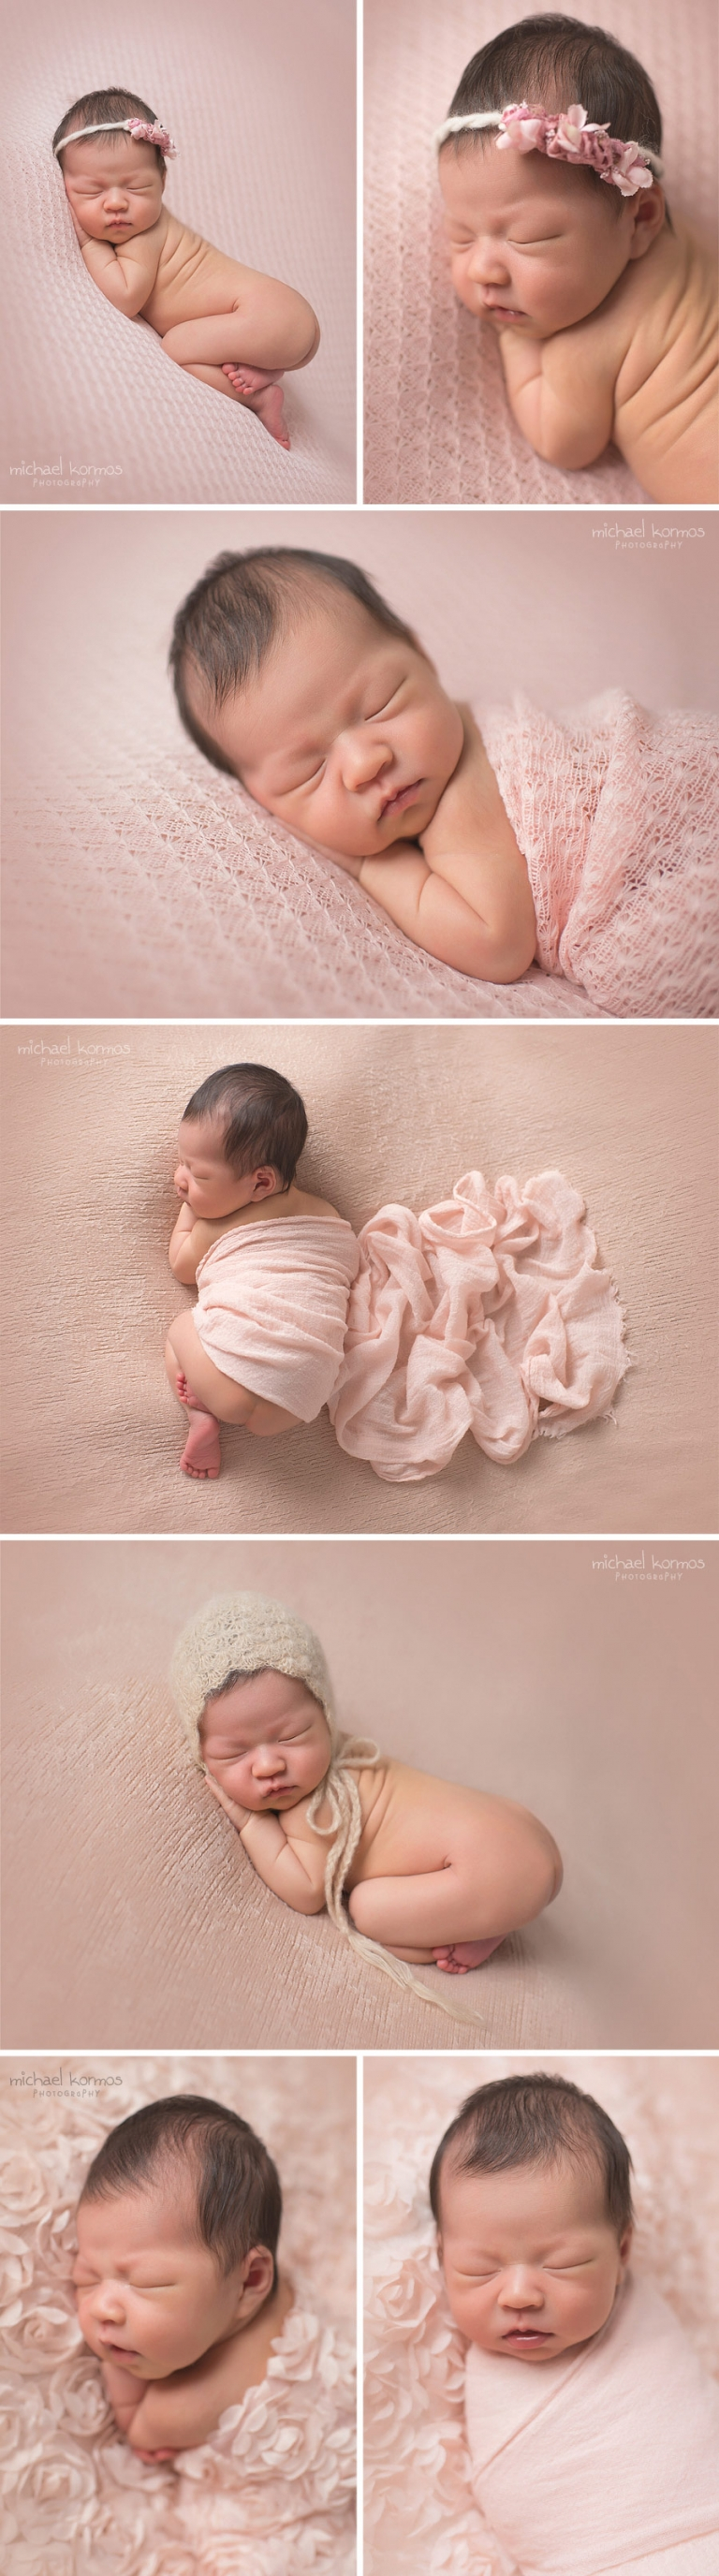 nyc newborn baby photography studio manhattan